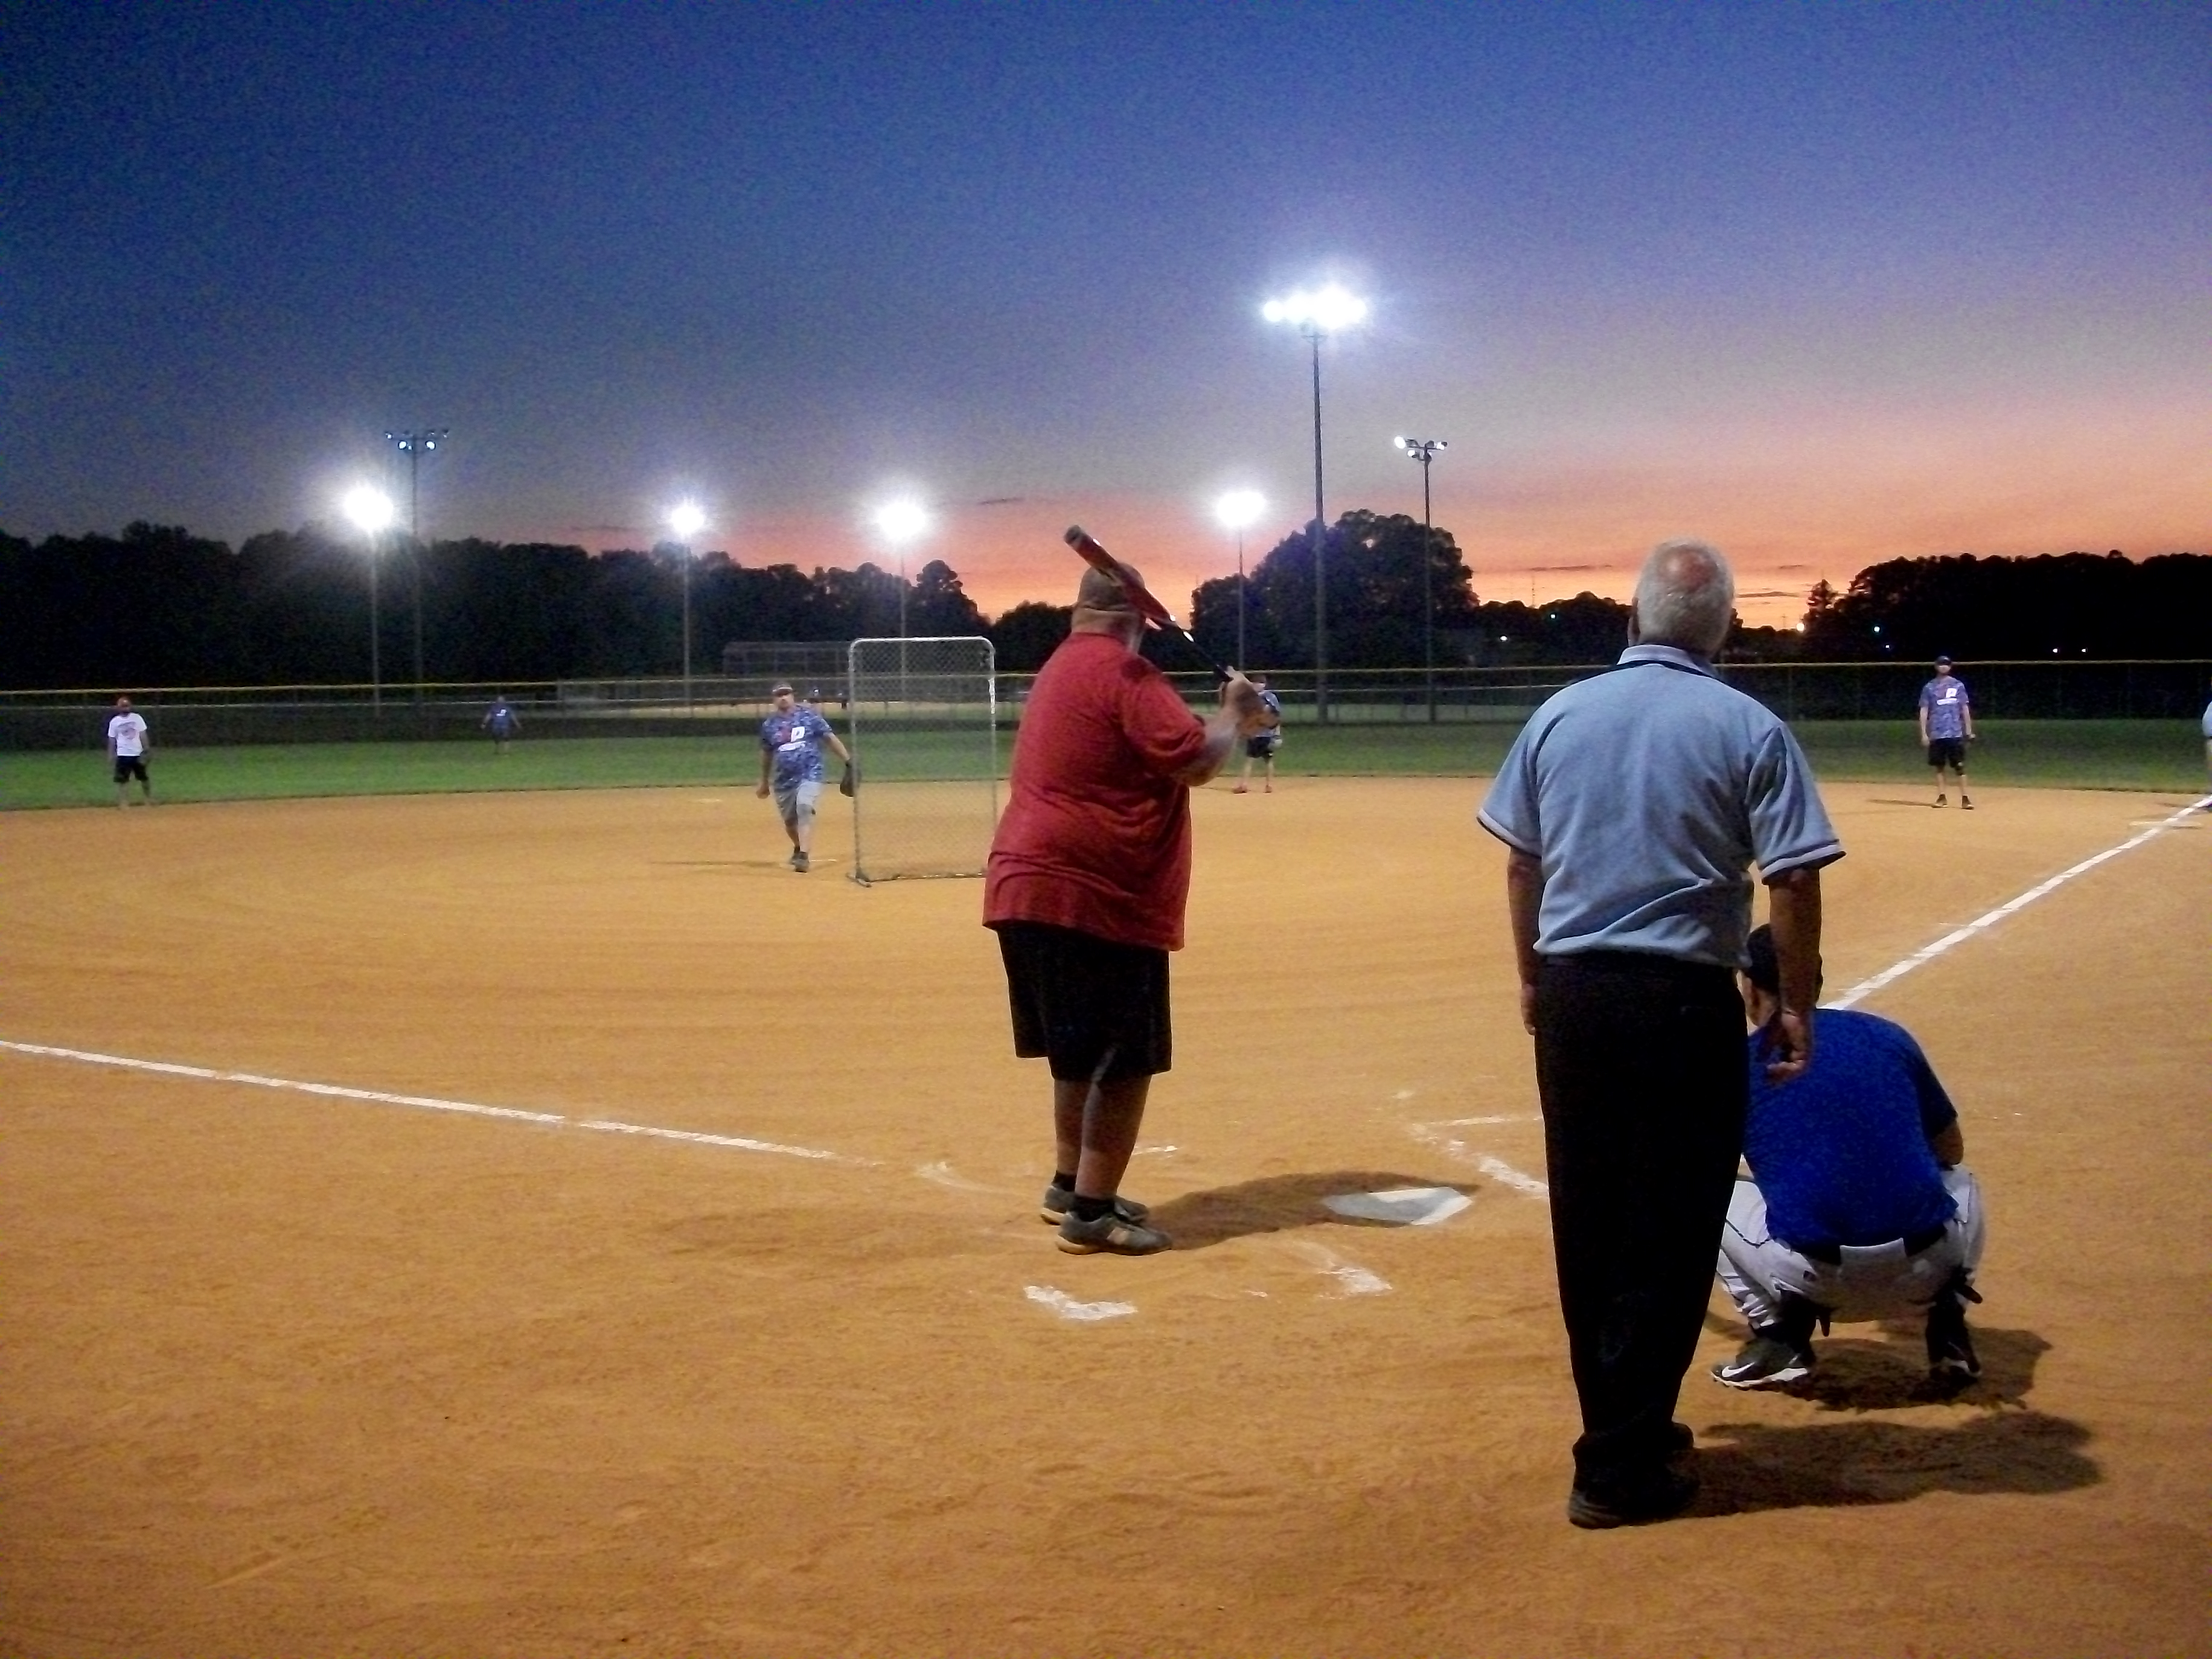 Adult softball participants at Parks Williams Athletic Complex.